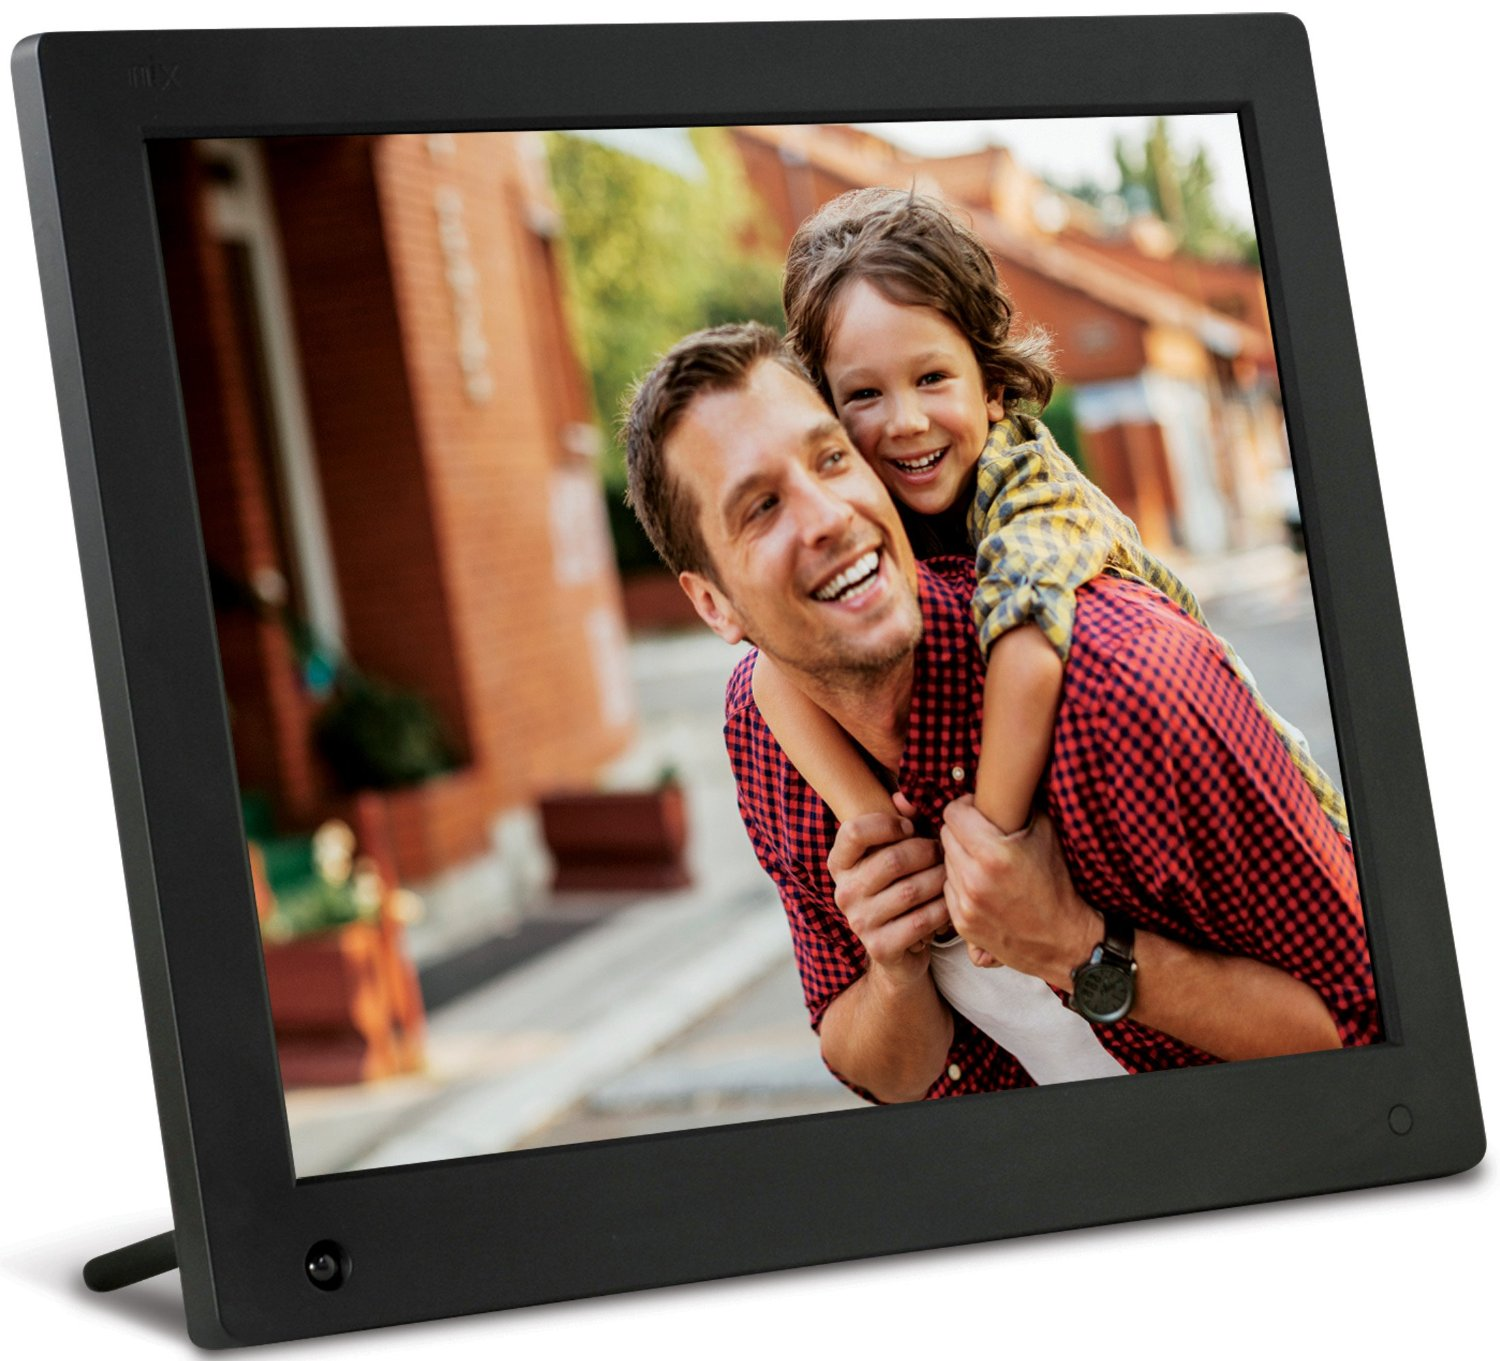 Nix digital frame for anniversary gift for wife